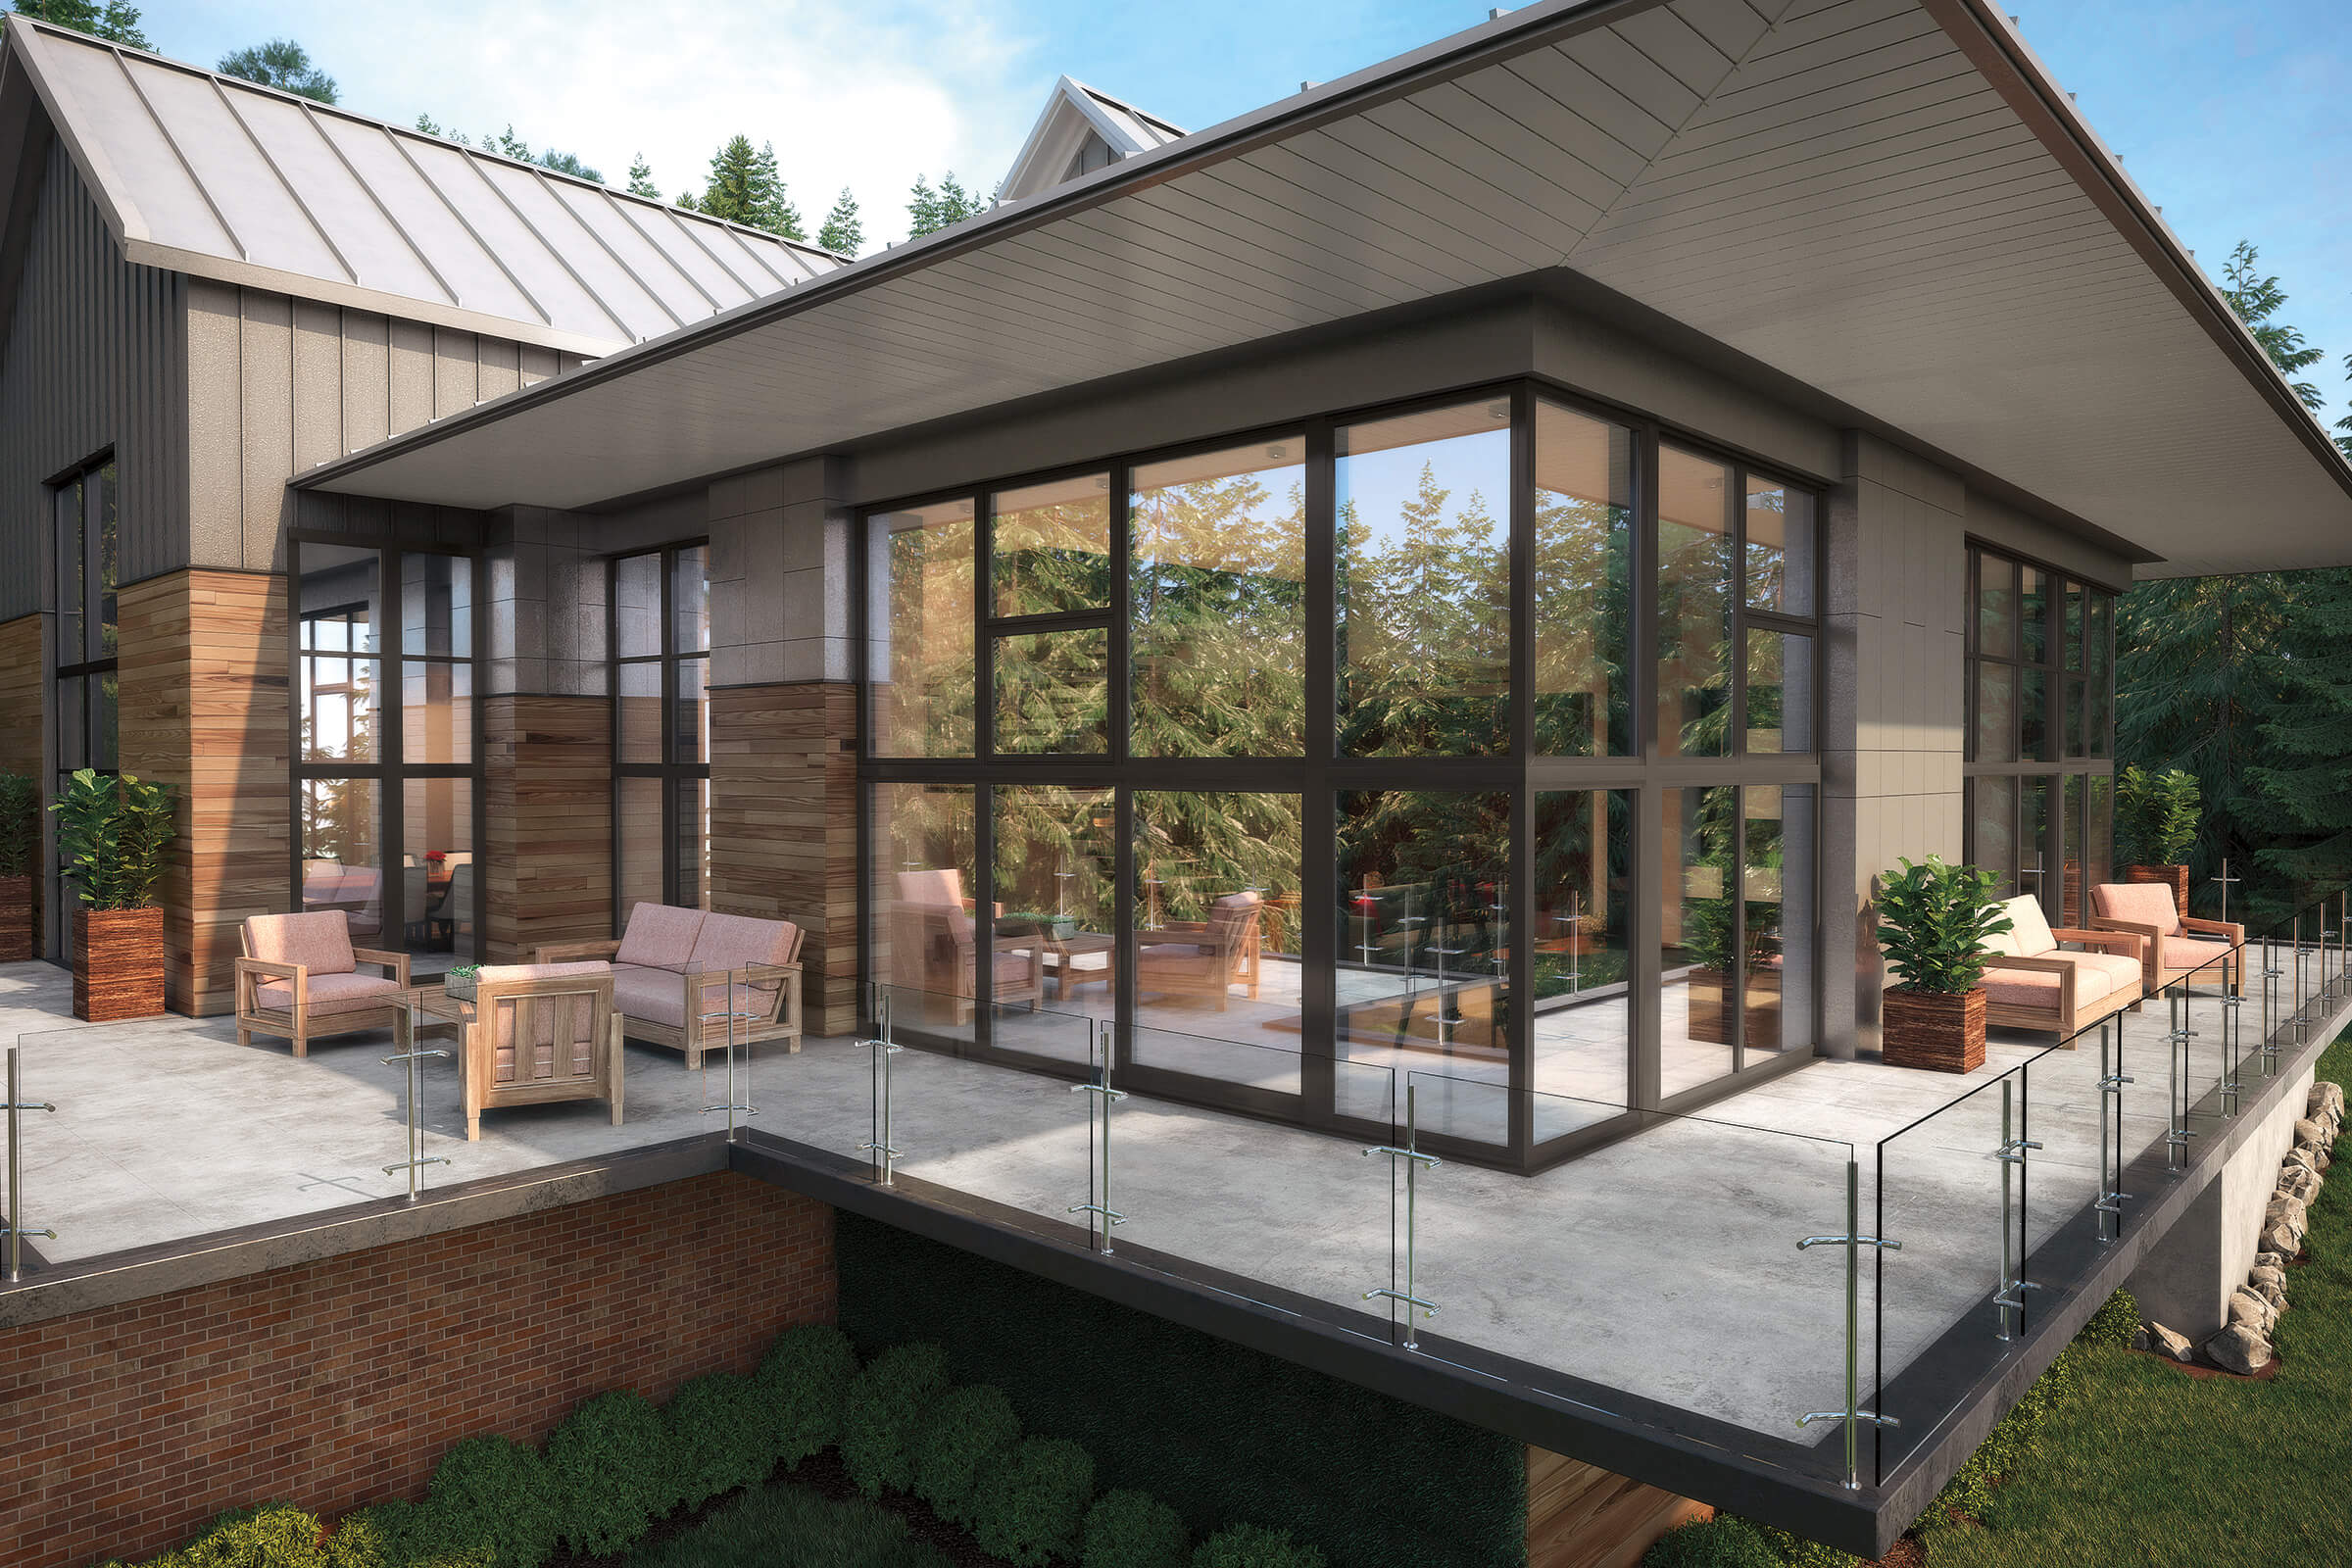 Patio And Exterior View Of House with Signature Ultimate Awning Push Out Narrow Frame Windows